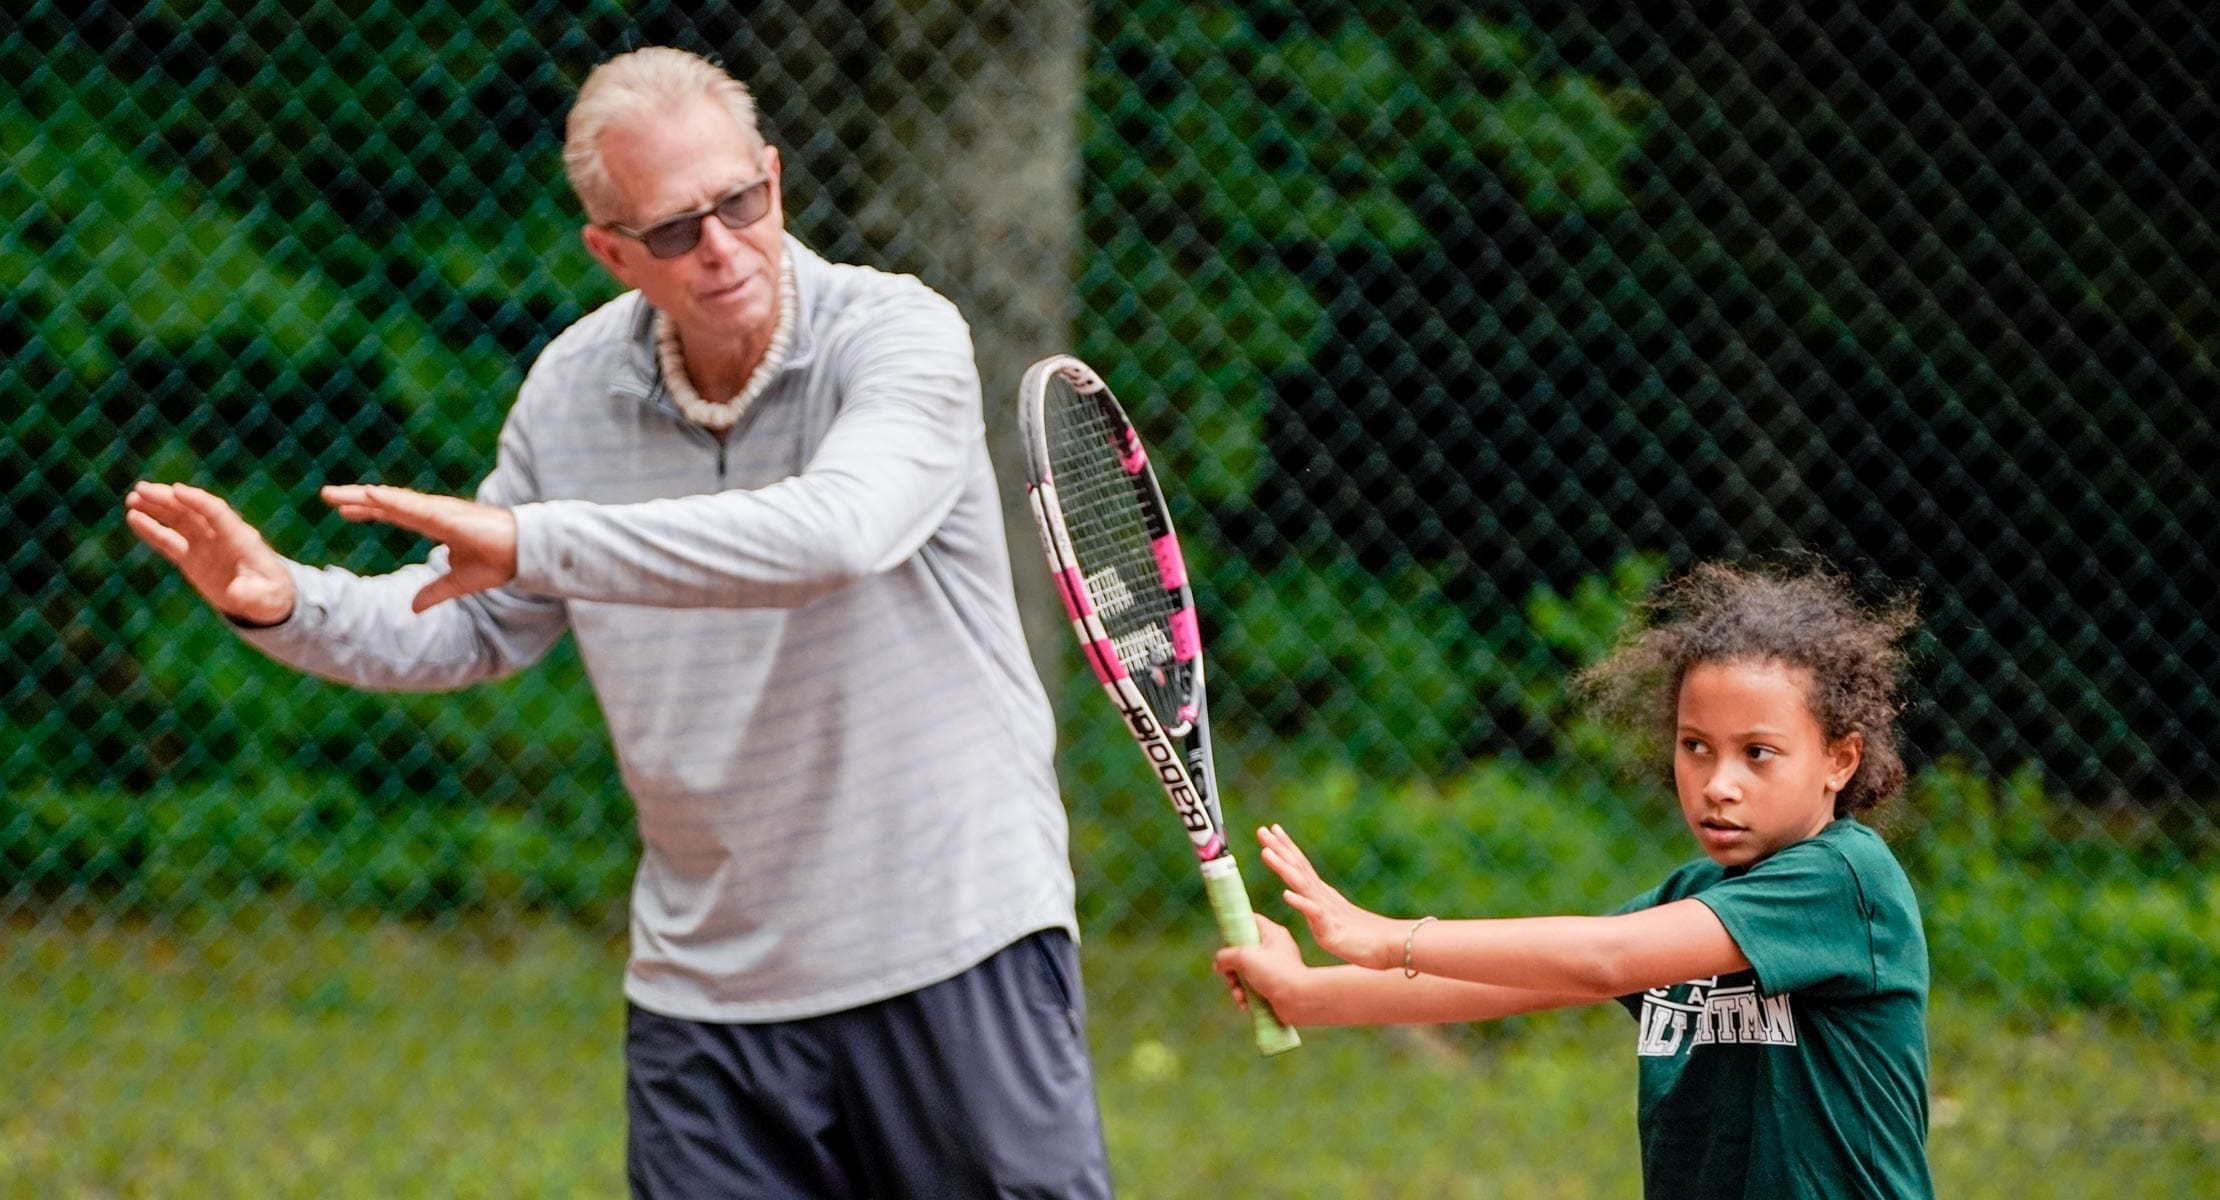 man demonstrating how to swing a tennis racket to young camper